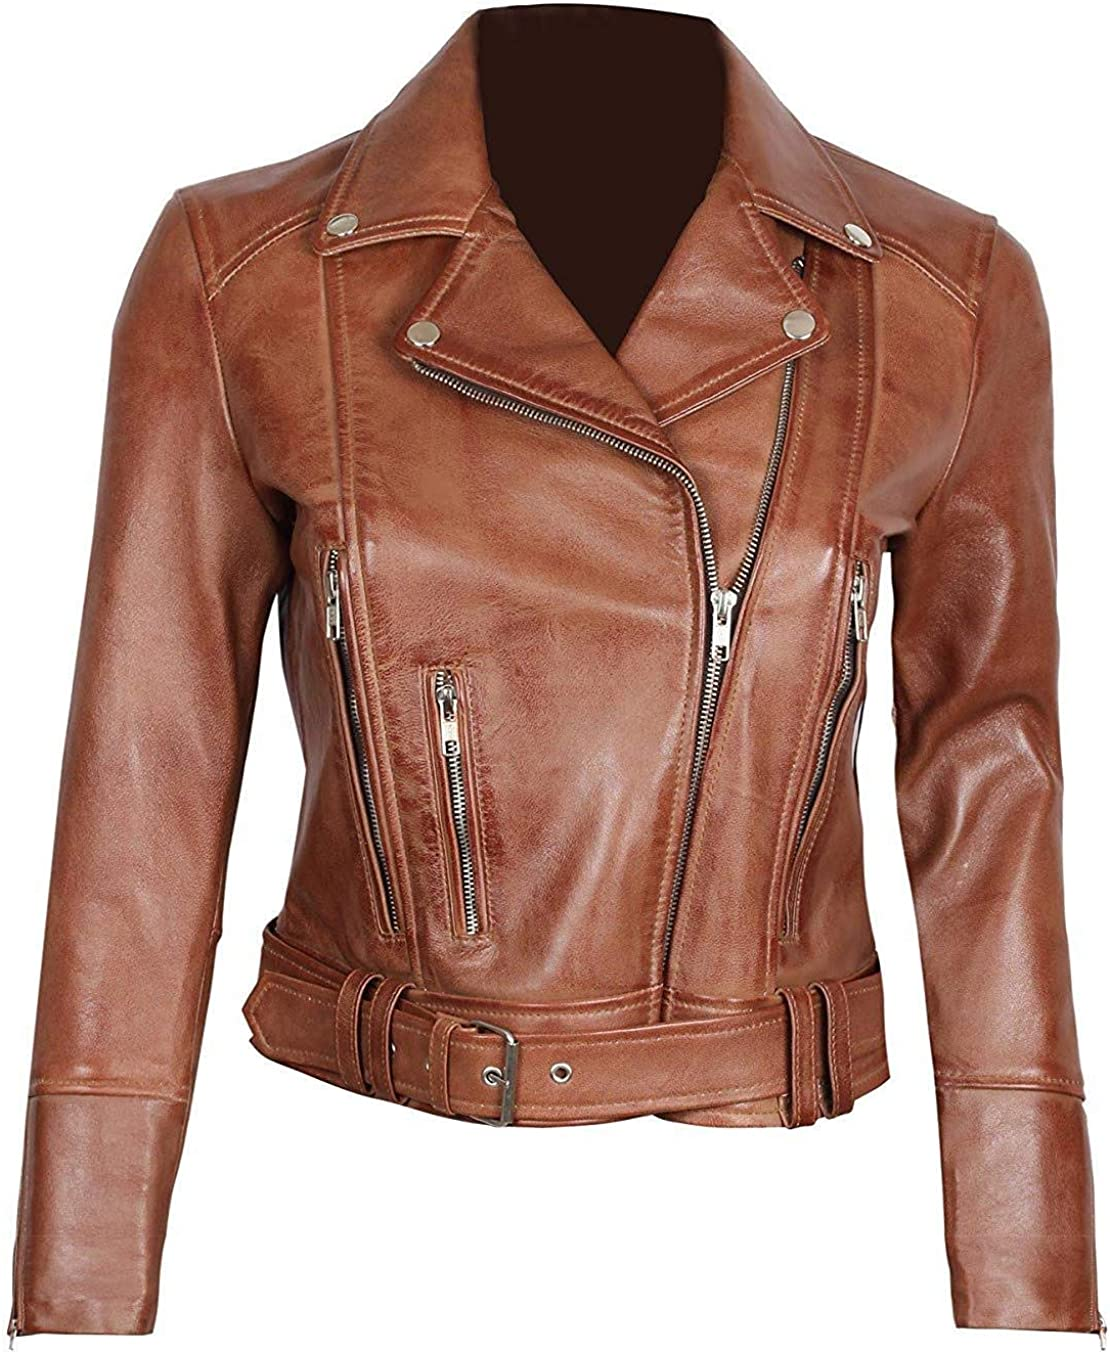 Womens Leather Motorcycle Jacket - Real Lambskin Short Jackets For Women